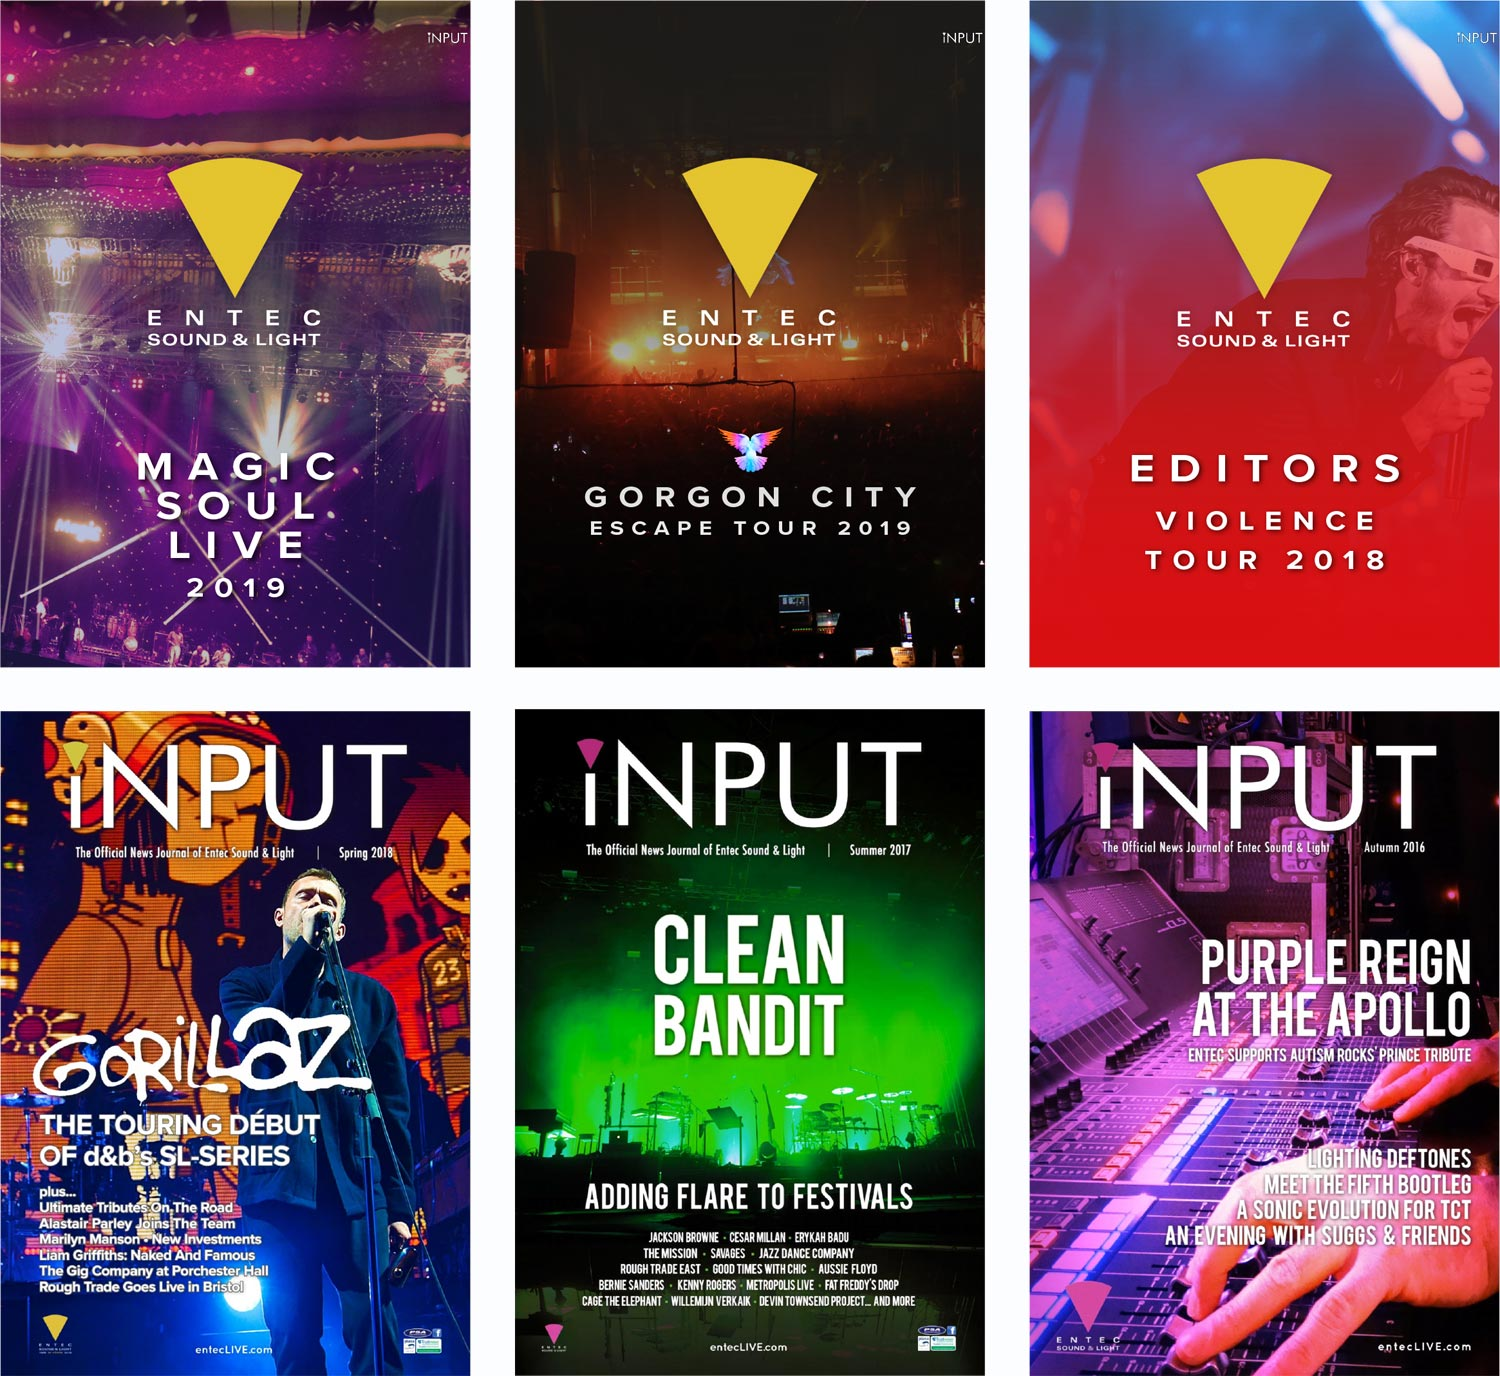 iNPUT Library – Entec Sound and Light